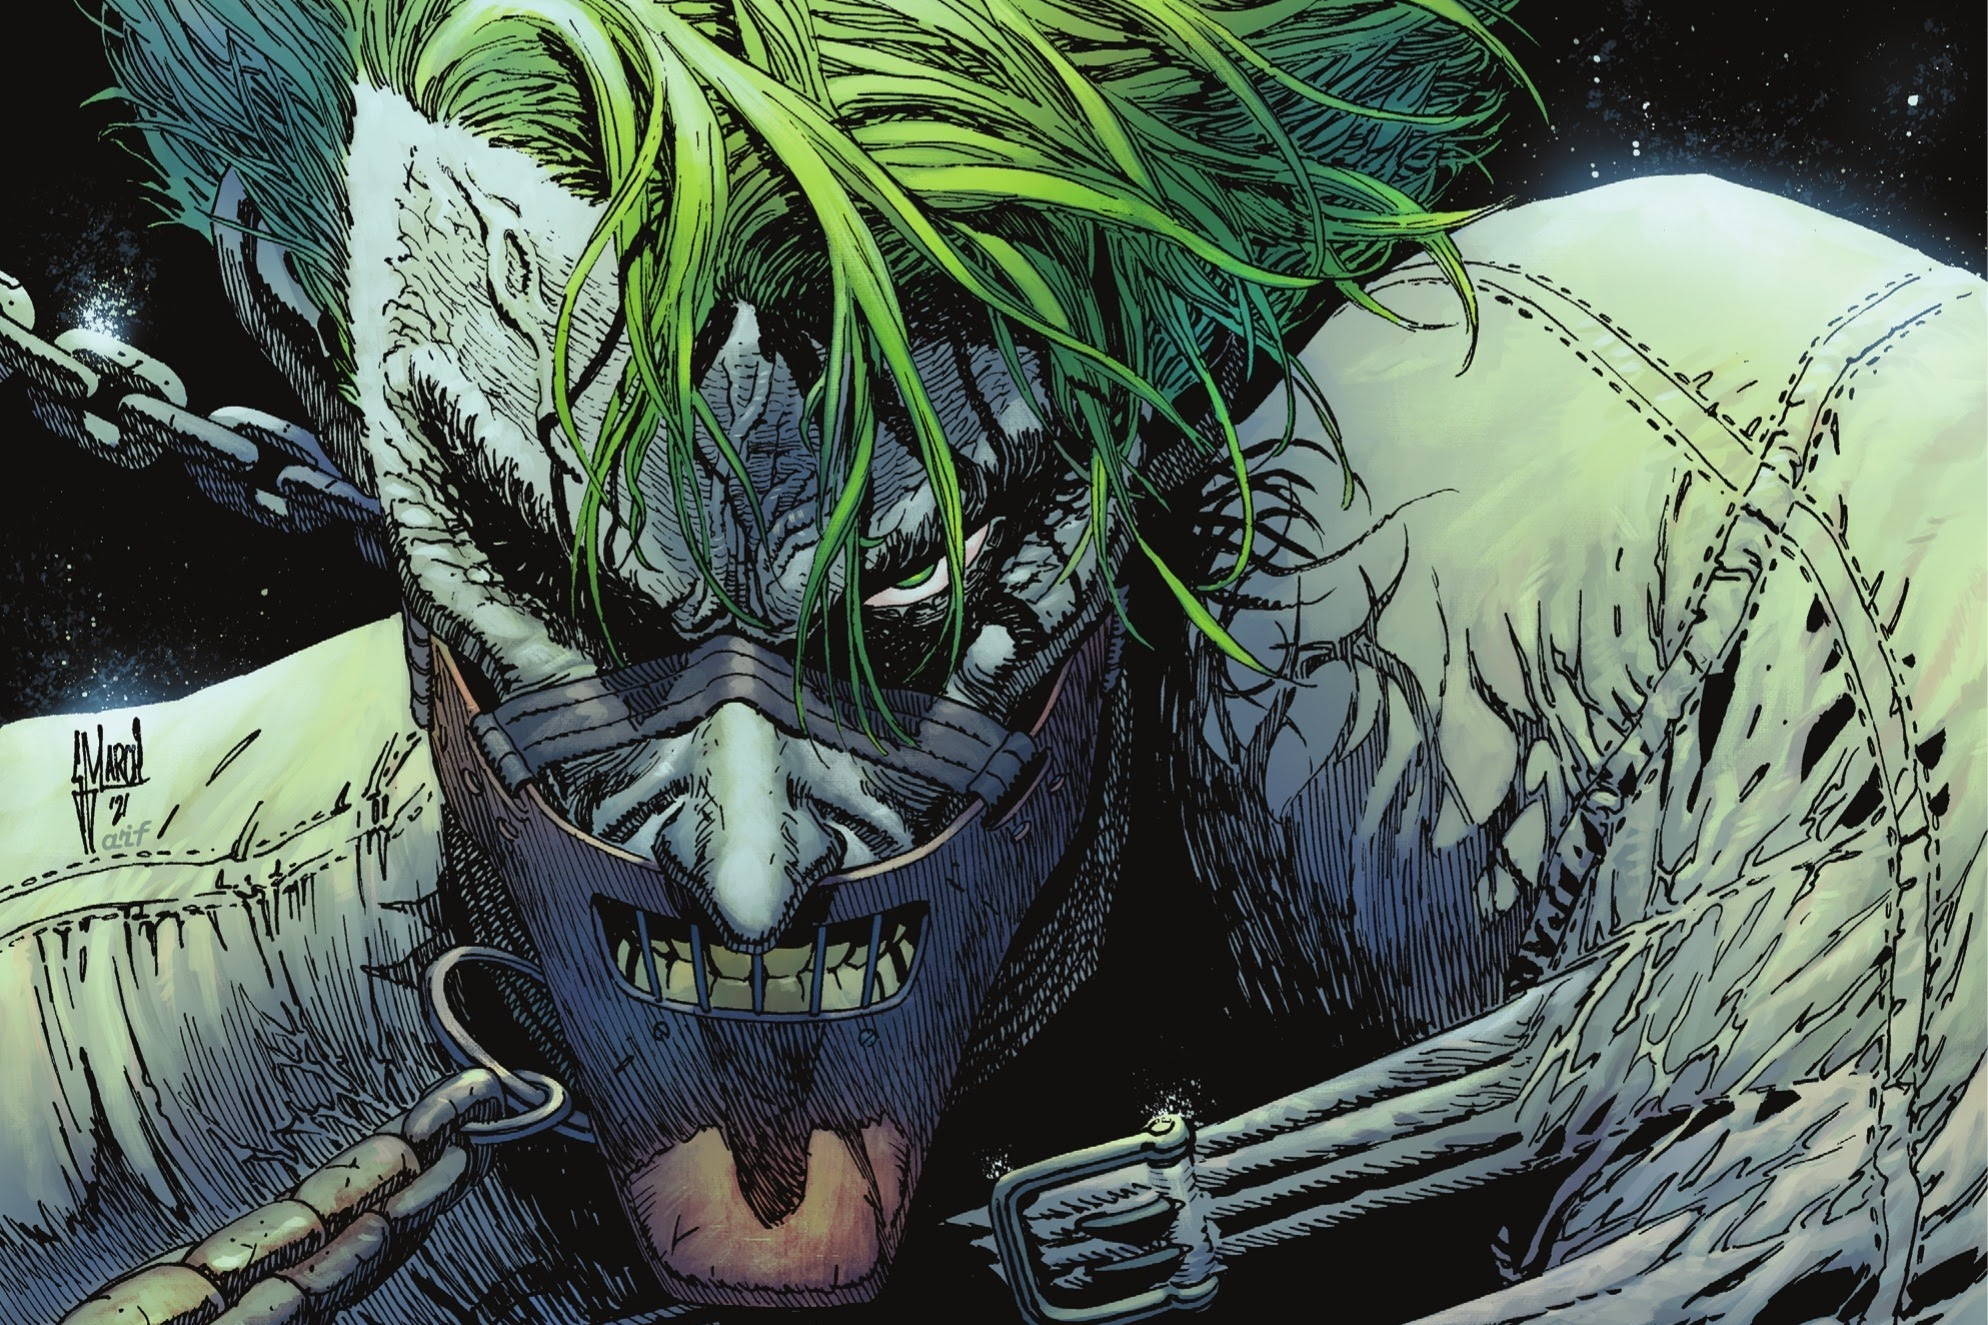 The Joker, chained, straightjacketed, and muzzled like Hannibal Lector, ominously stares with one eye at the viewer on the cover of The Joker #5 (2021).